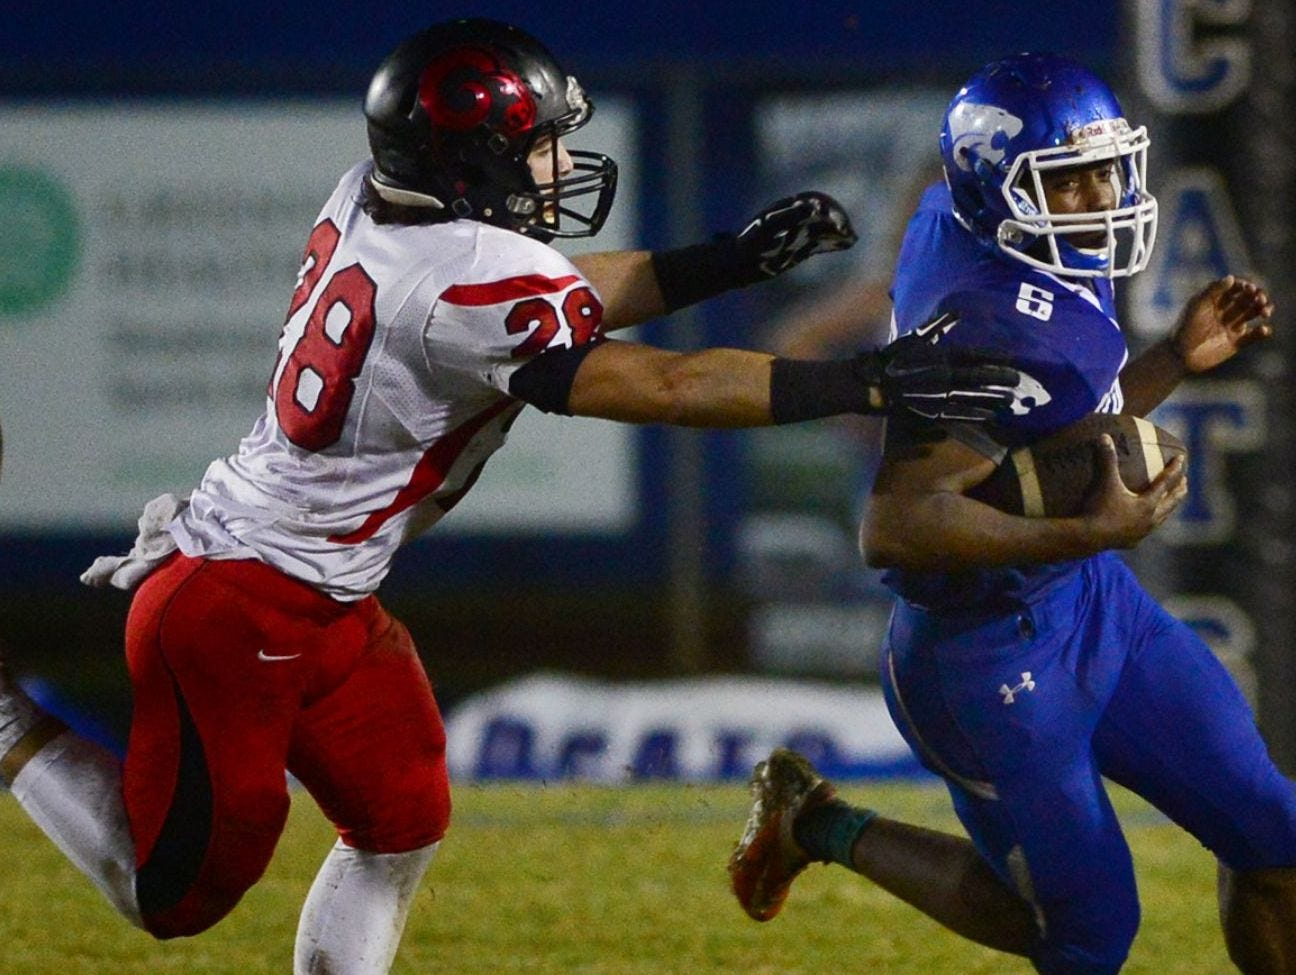 Senior linebacker Isaiah Sayegh (28) and the Hillcrest Rams will host rival Mauldin in a Class AAAA Division I first-round playoff game Friday night.